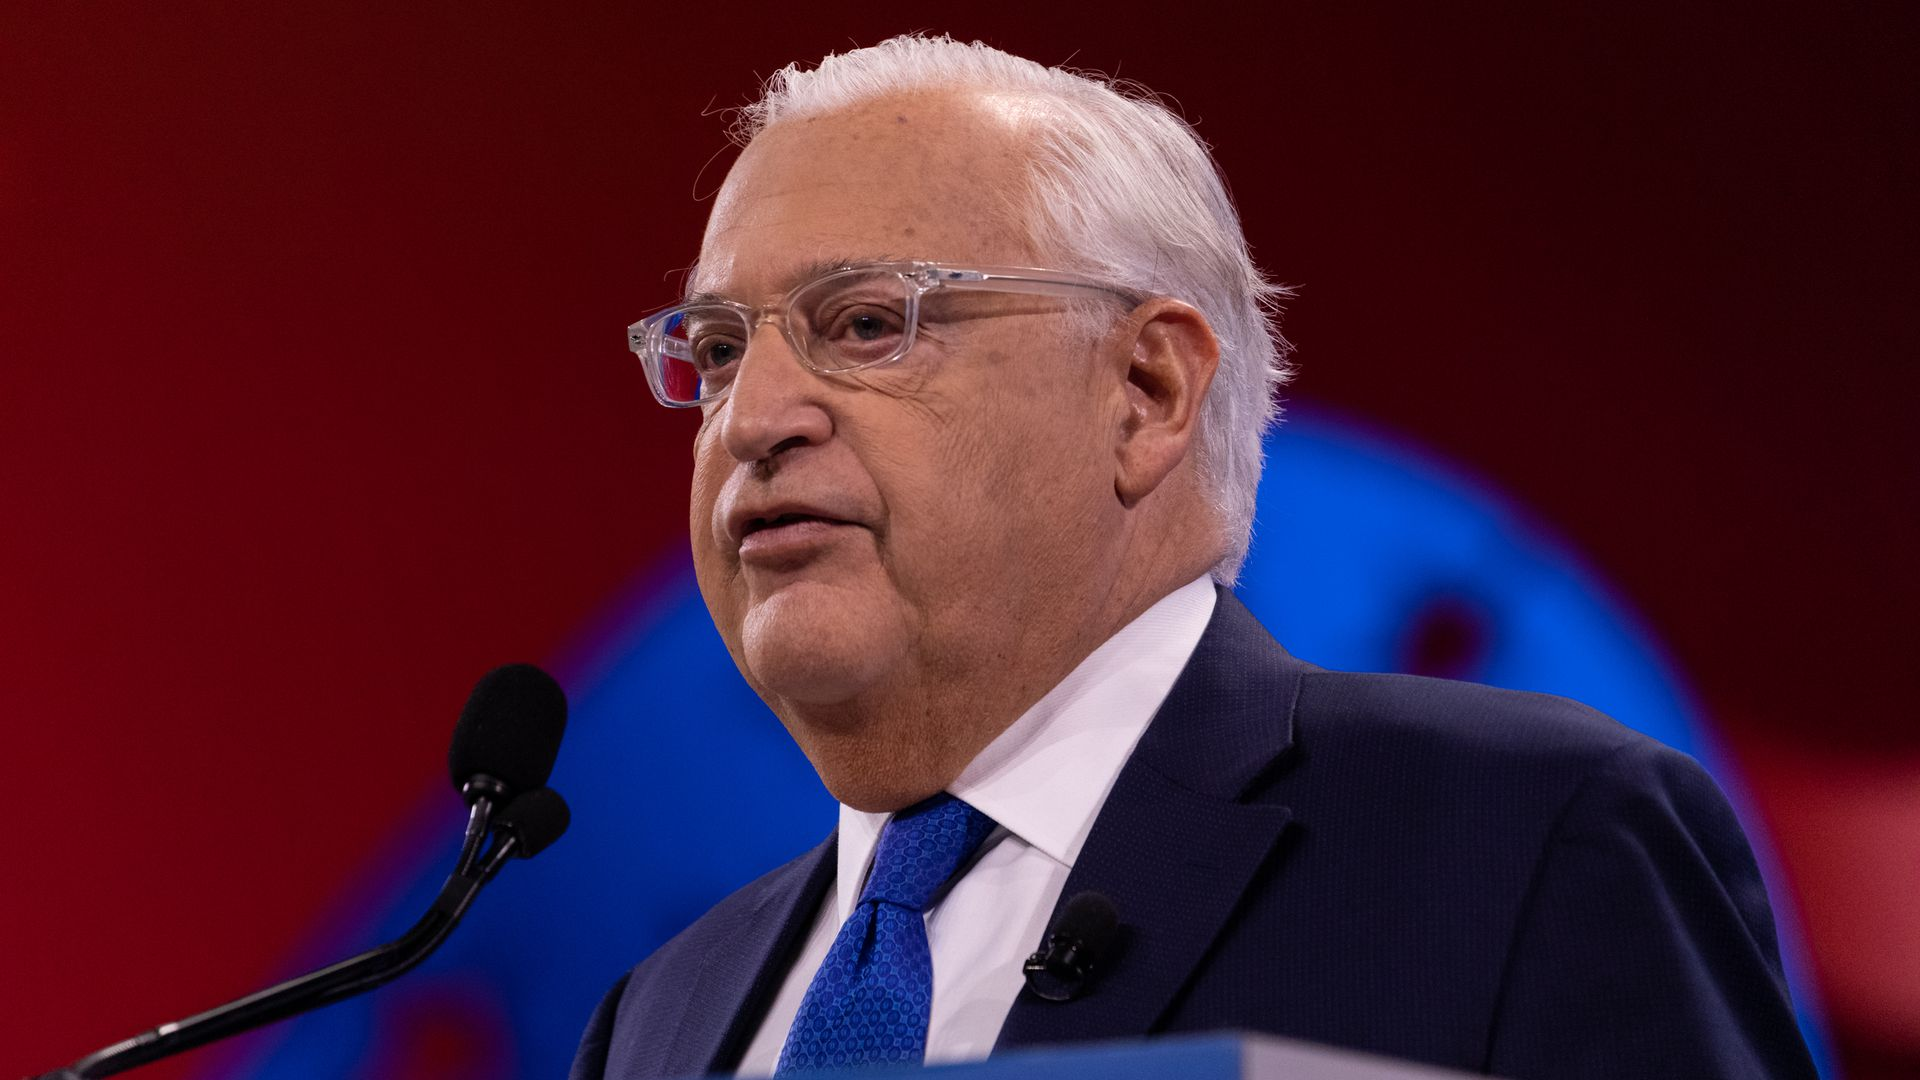 In this image, David Friedman faces the left and speaks, wearing glasses.